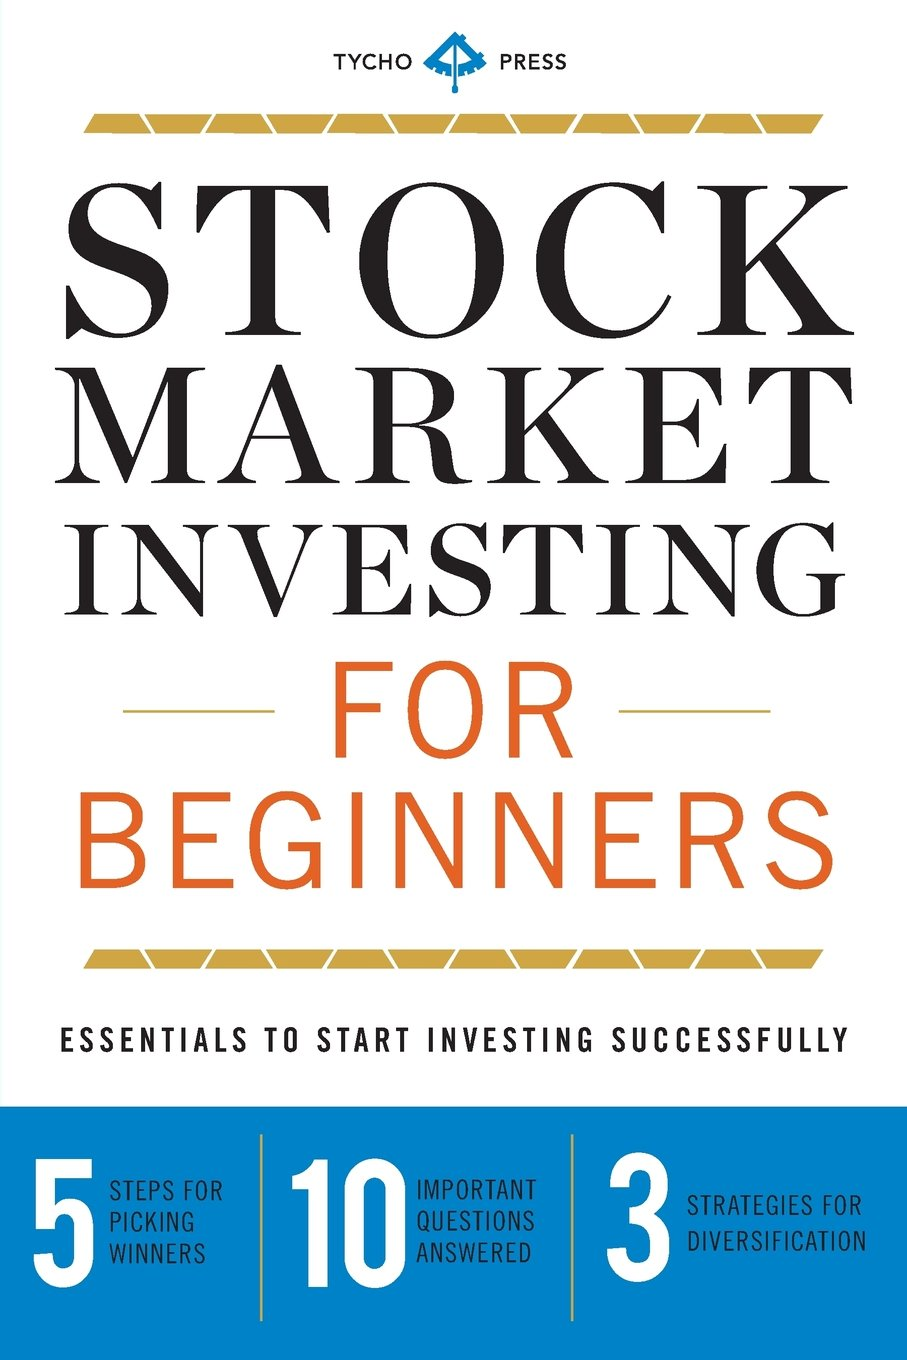 Stock Market Investing for Beginners: Essentials to Start Investing Successfully: Amazon.es: Tycho Press: Libros en idiomas extranjeros